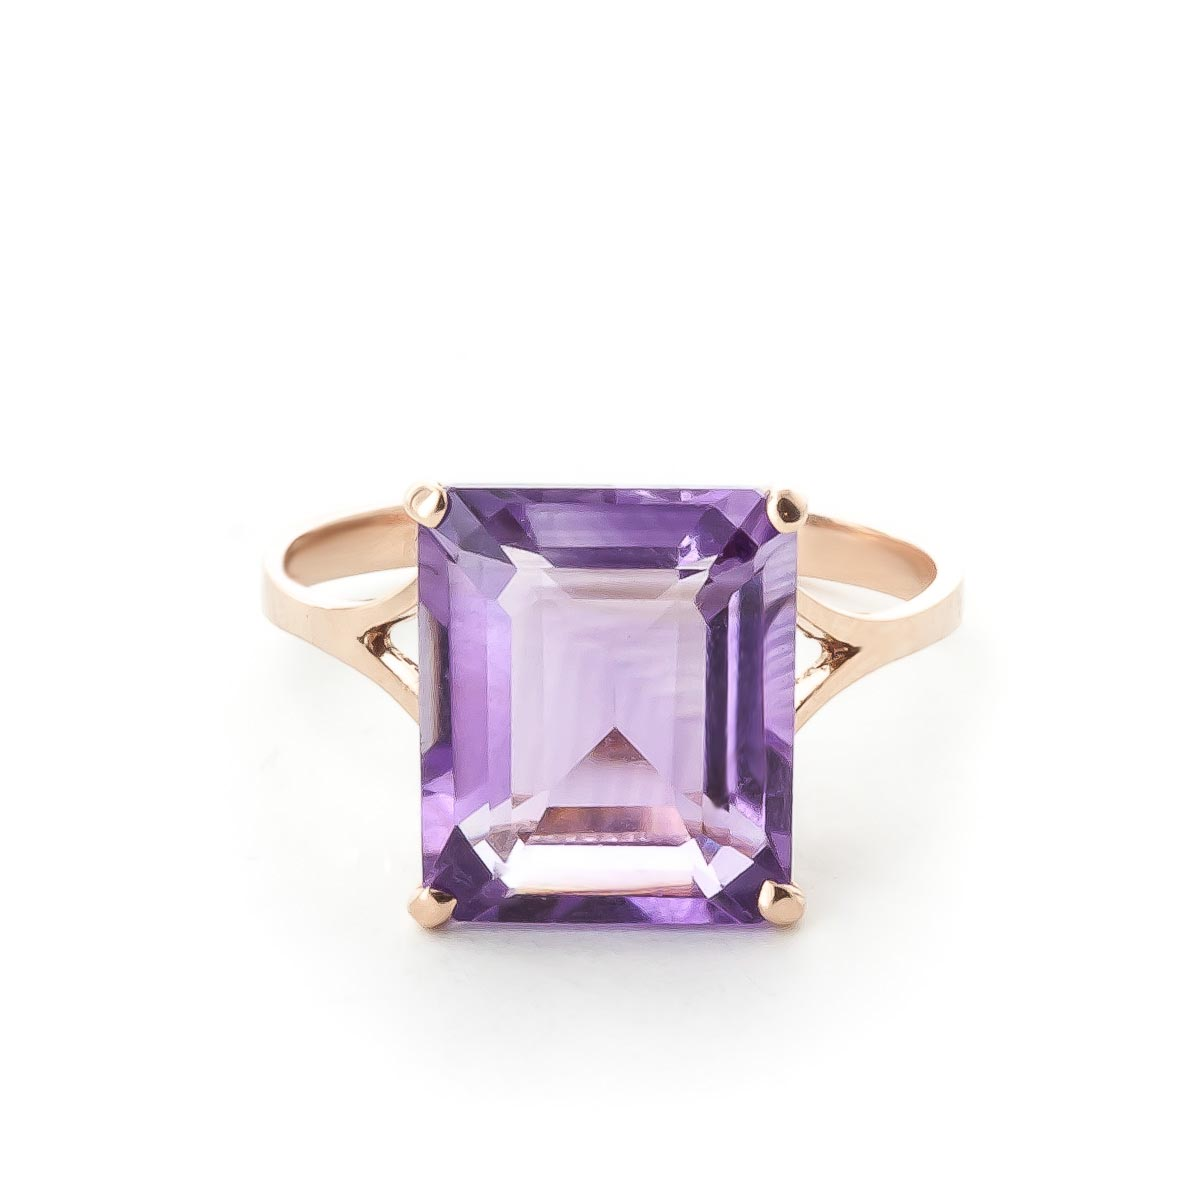 Image of Amethyst Auroral Ring 6.5 ct in 18ct Rose Gold